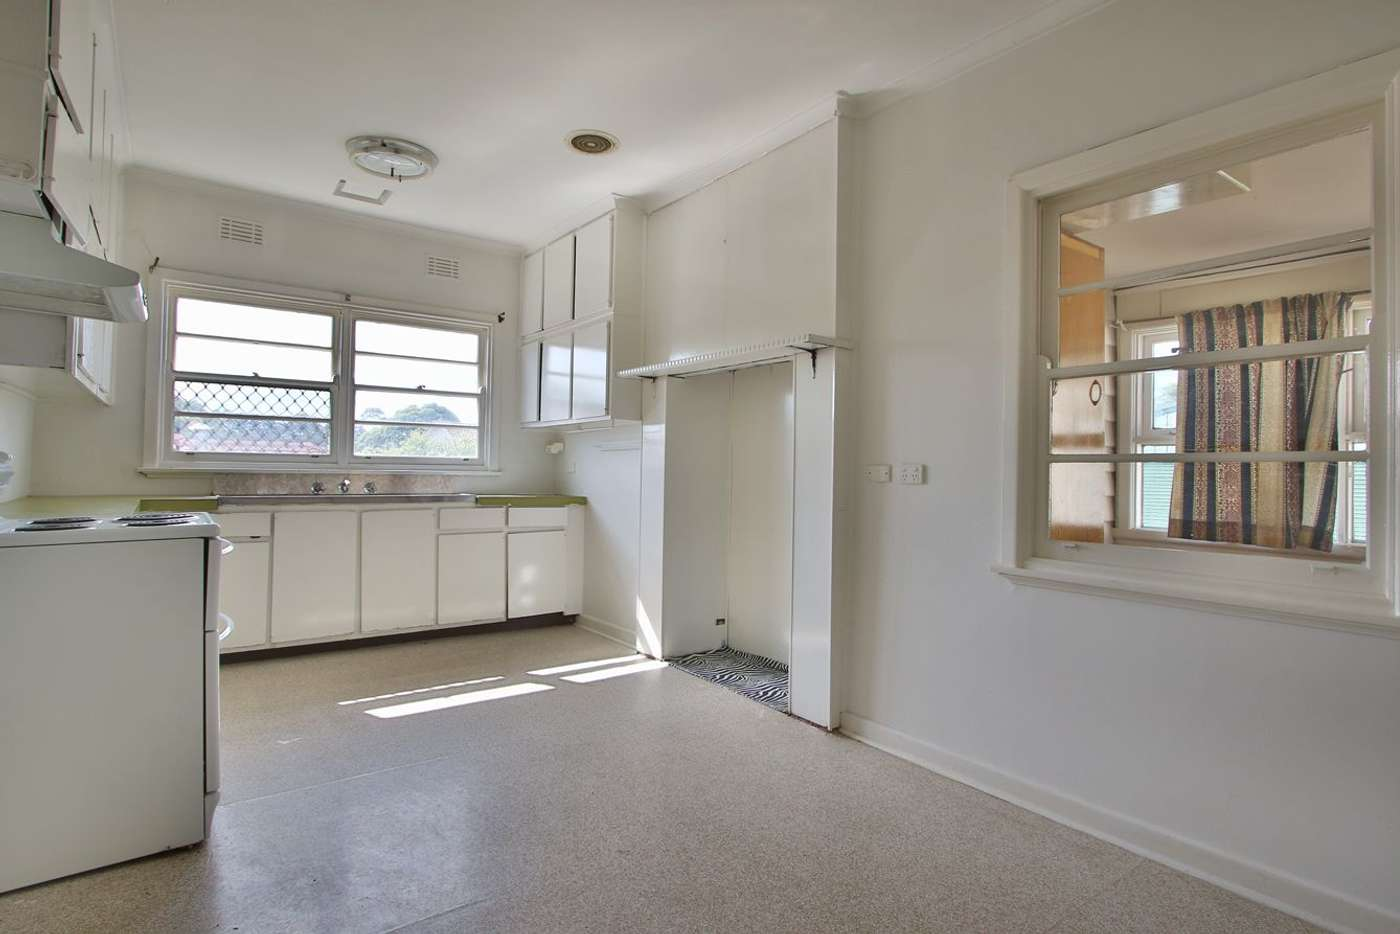 Main view of Homely house listing, 34 Fiander Avenue, Glen Waverley VIC 3150